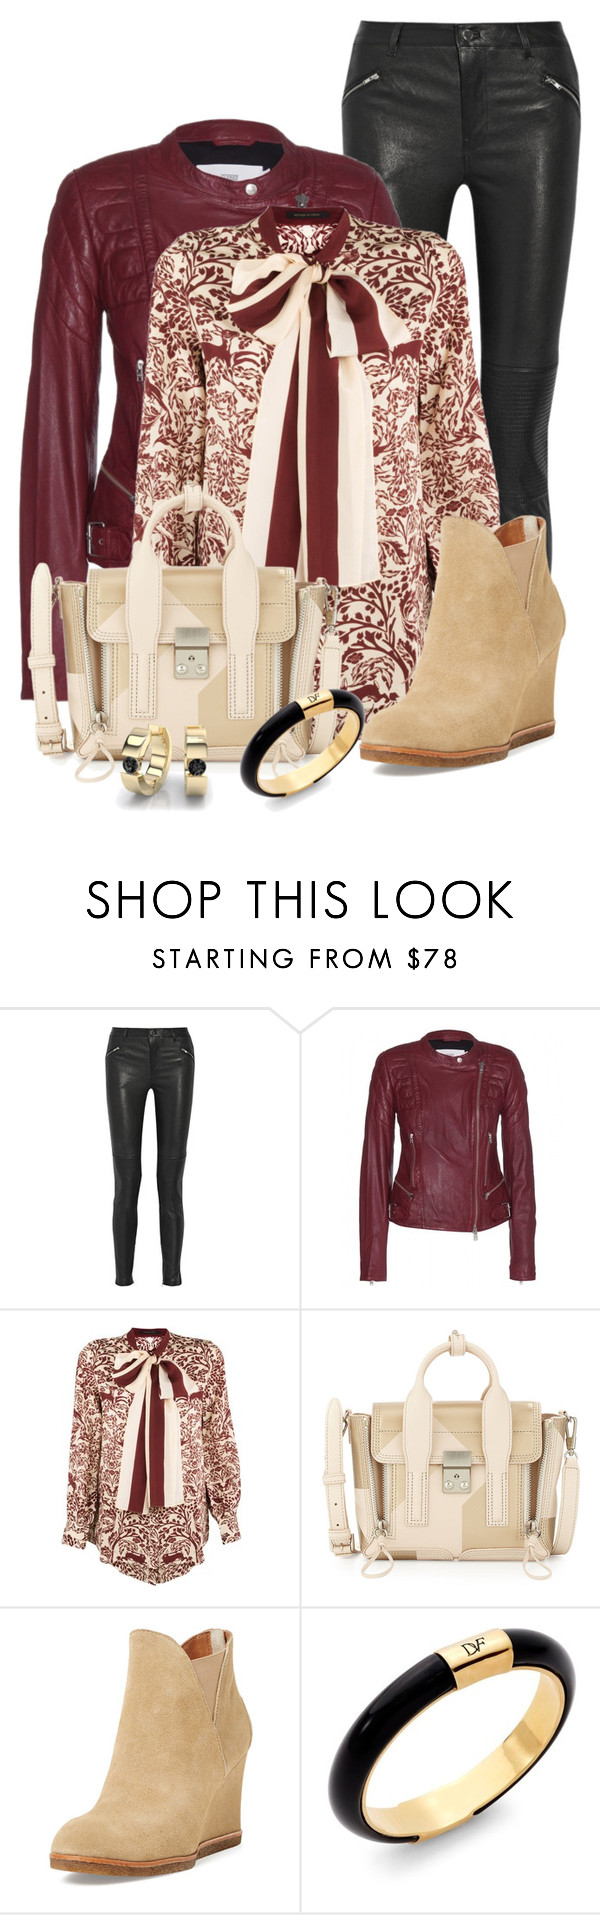 """""""Bow & Leather"""" by feelgood35 ❤ liked on Polyvore featuring BLK DNM, Closed, Mother of Pearl, 3.1 Phillip Lim, Bettye Muller, Diane Von Furstenberg, bow, Leather, leatherpants and ankleboots"""